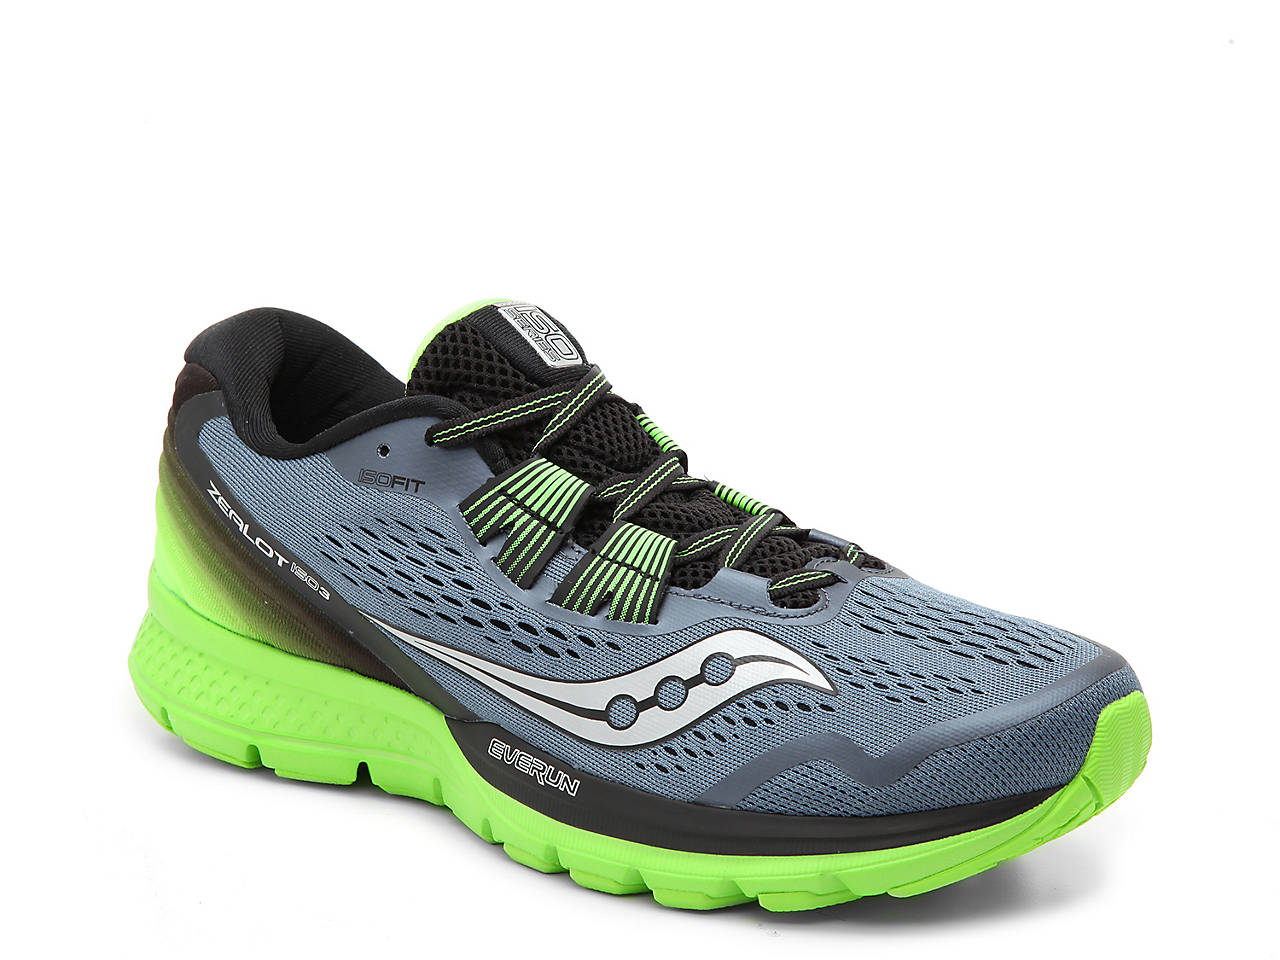 68f1f382f20a Saucony Zealot ISO 3 Running Shoe - Men s Men s Shoes